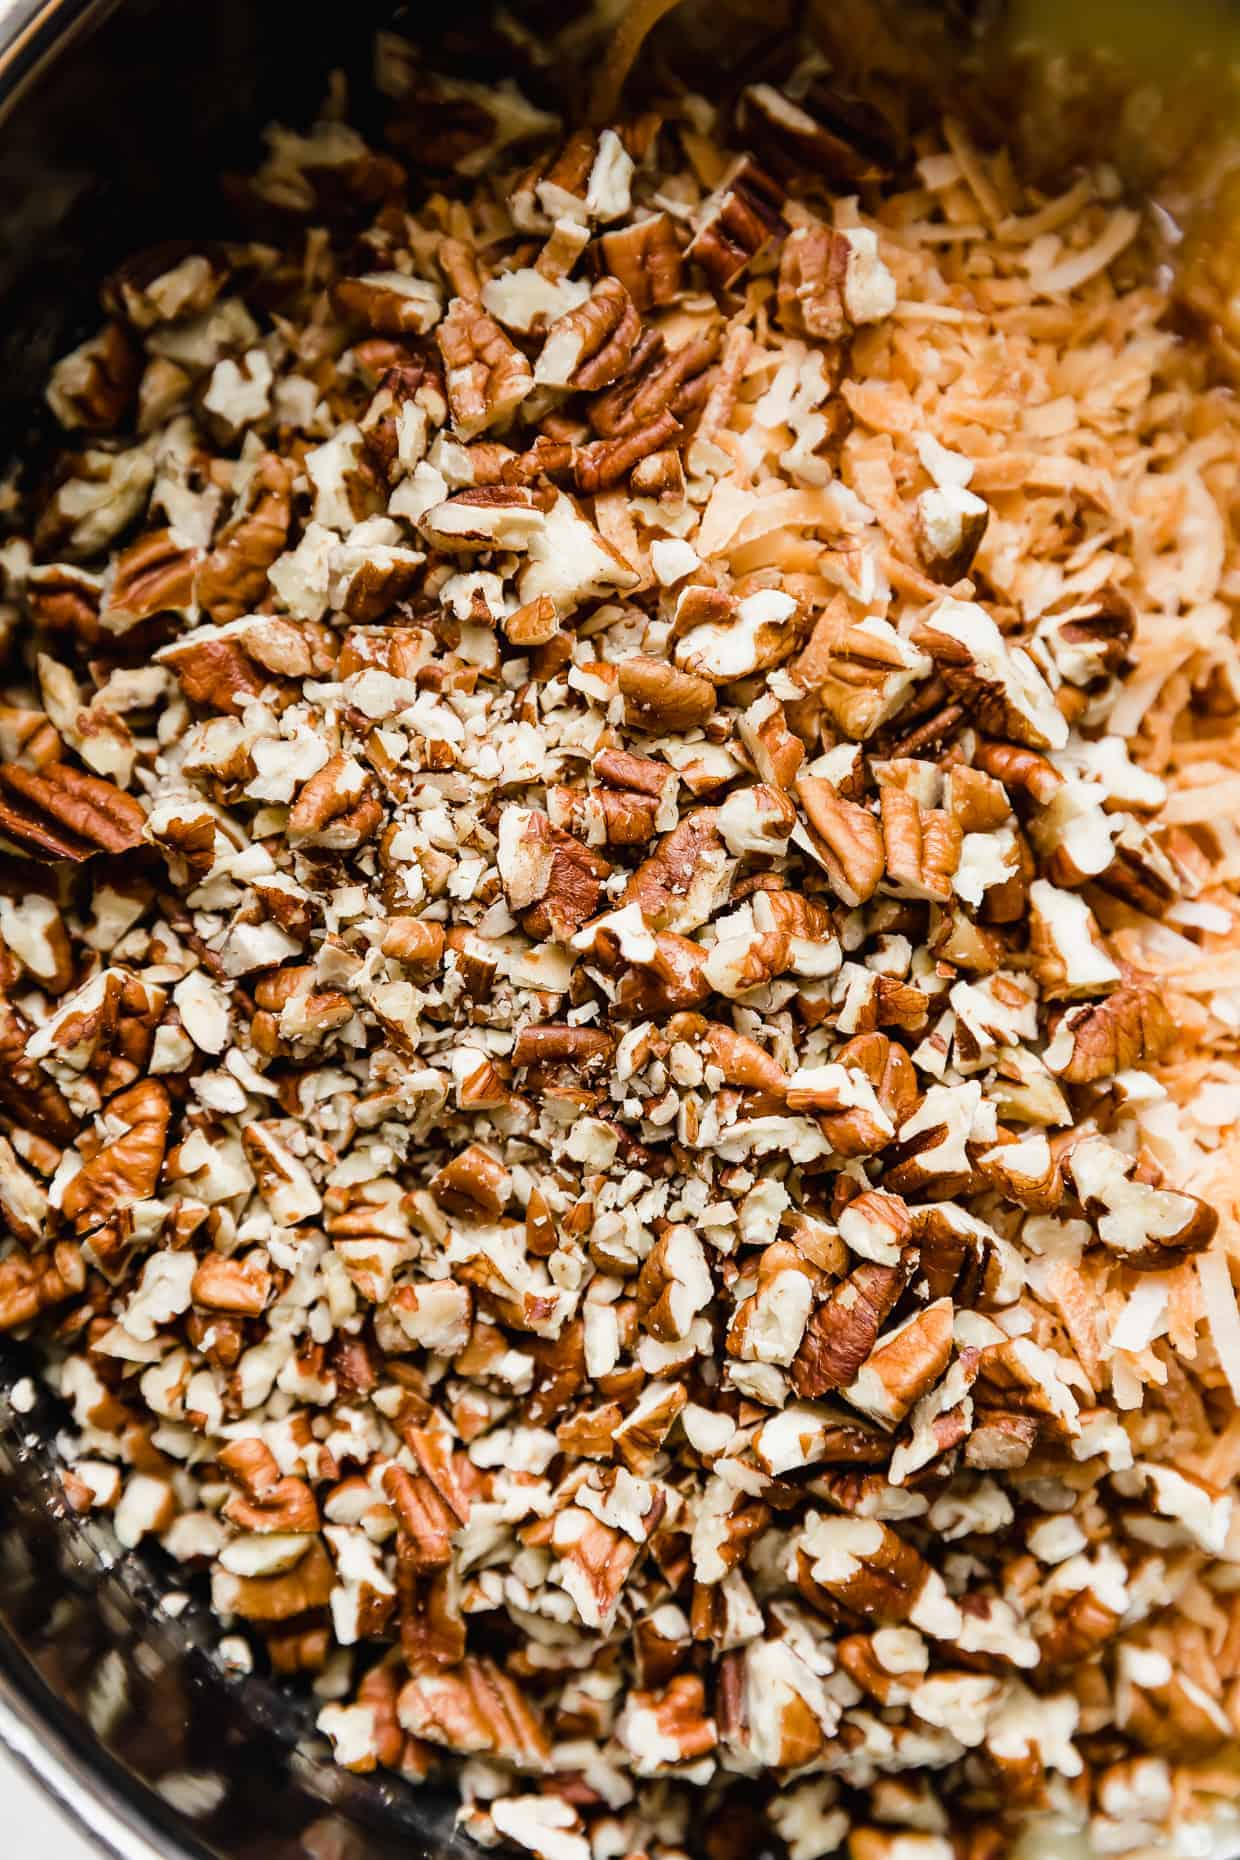 A close up photo of finely chopped brown pecans.